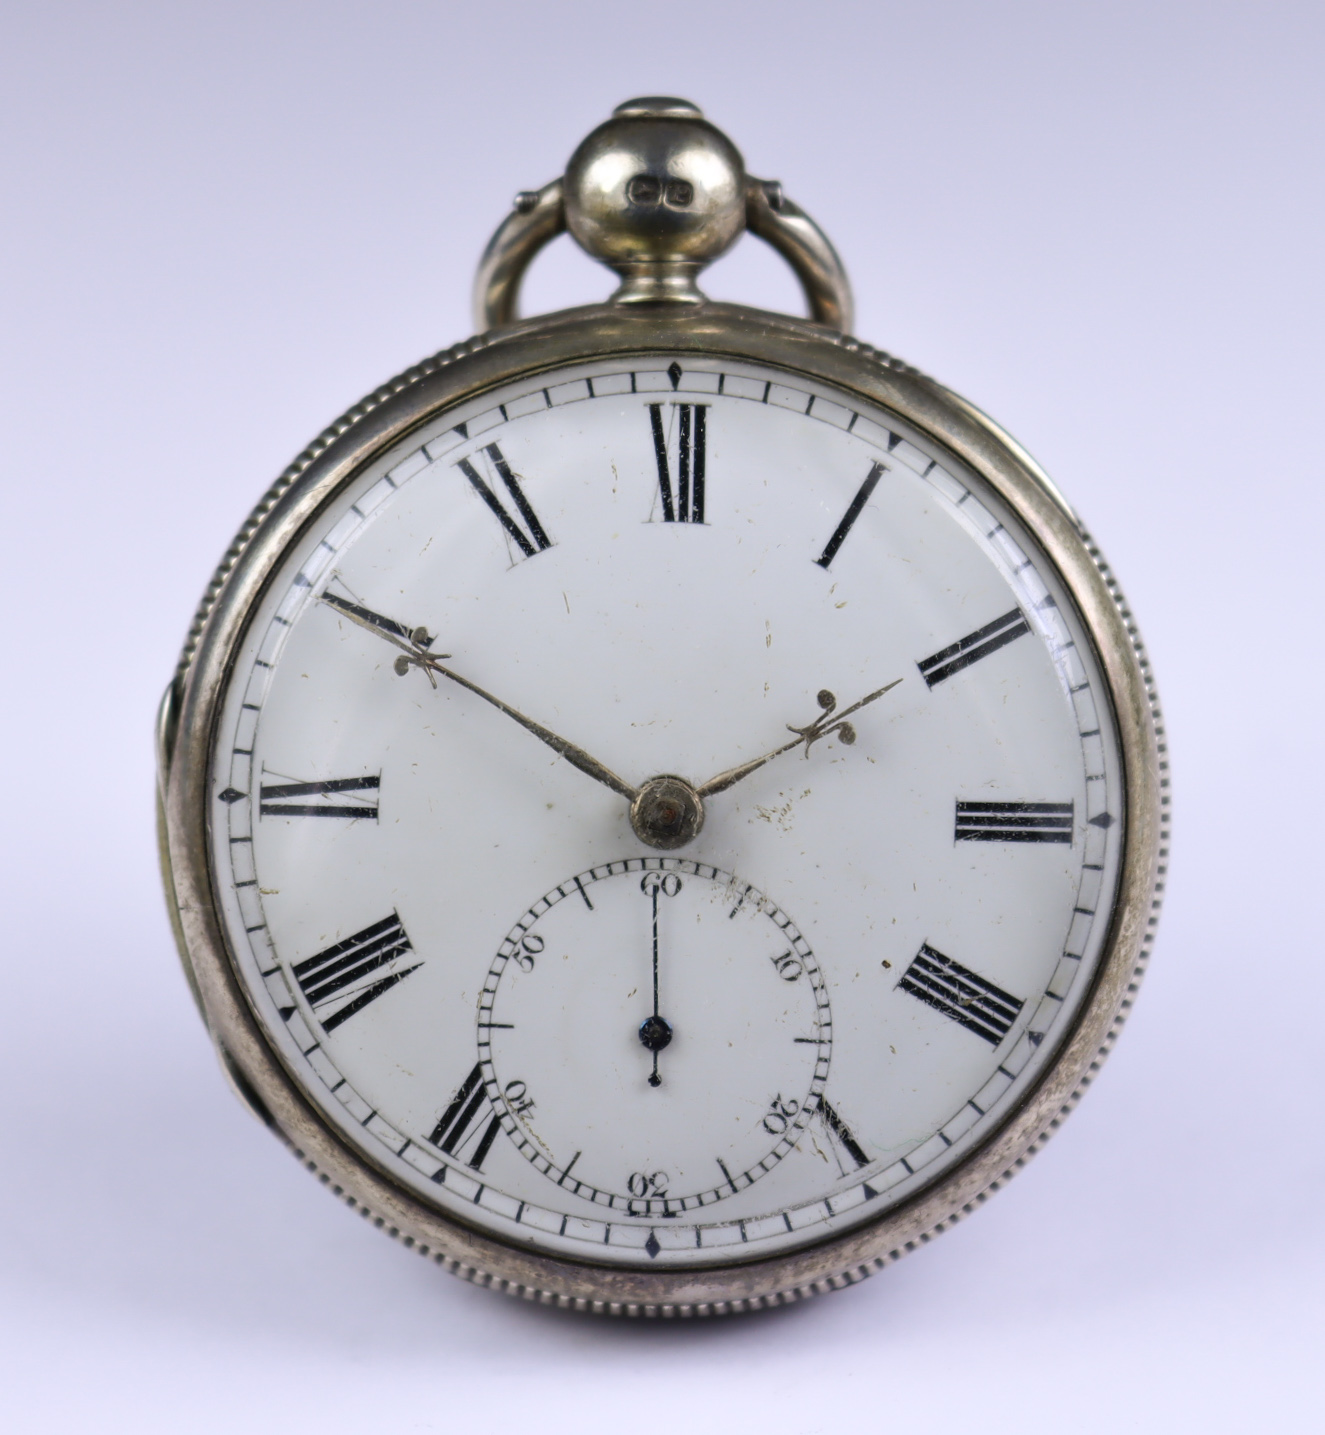 A Silver Cased Open Faced Duplex Pocket Watch, by French, Royal Exchange, London, 1830, 52mm